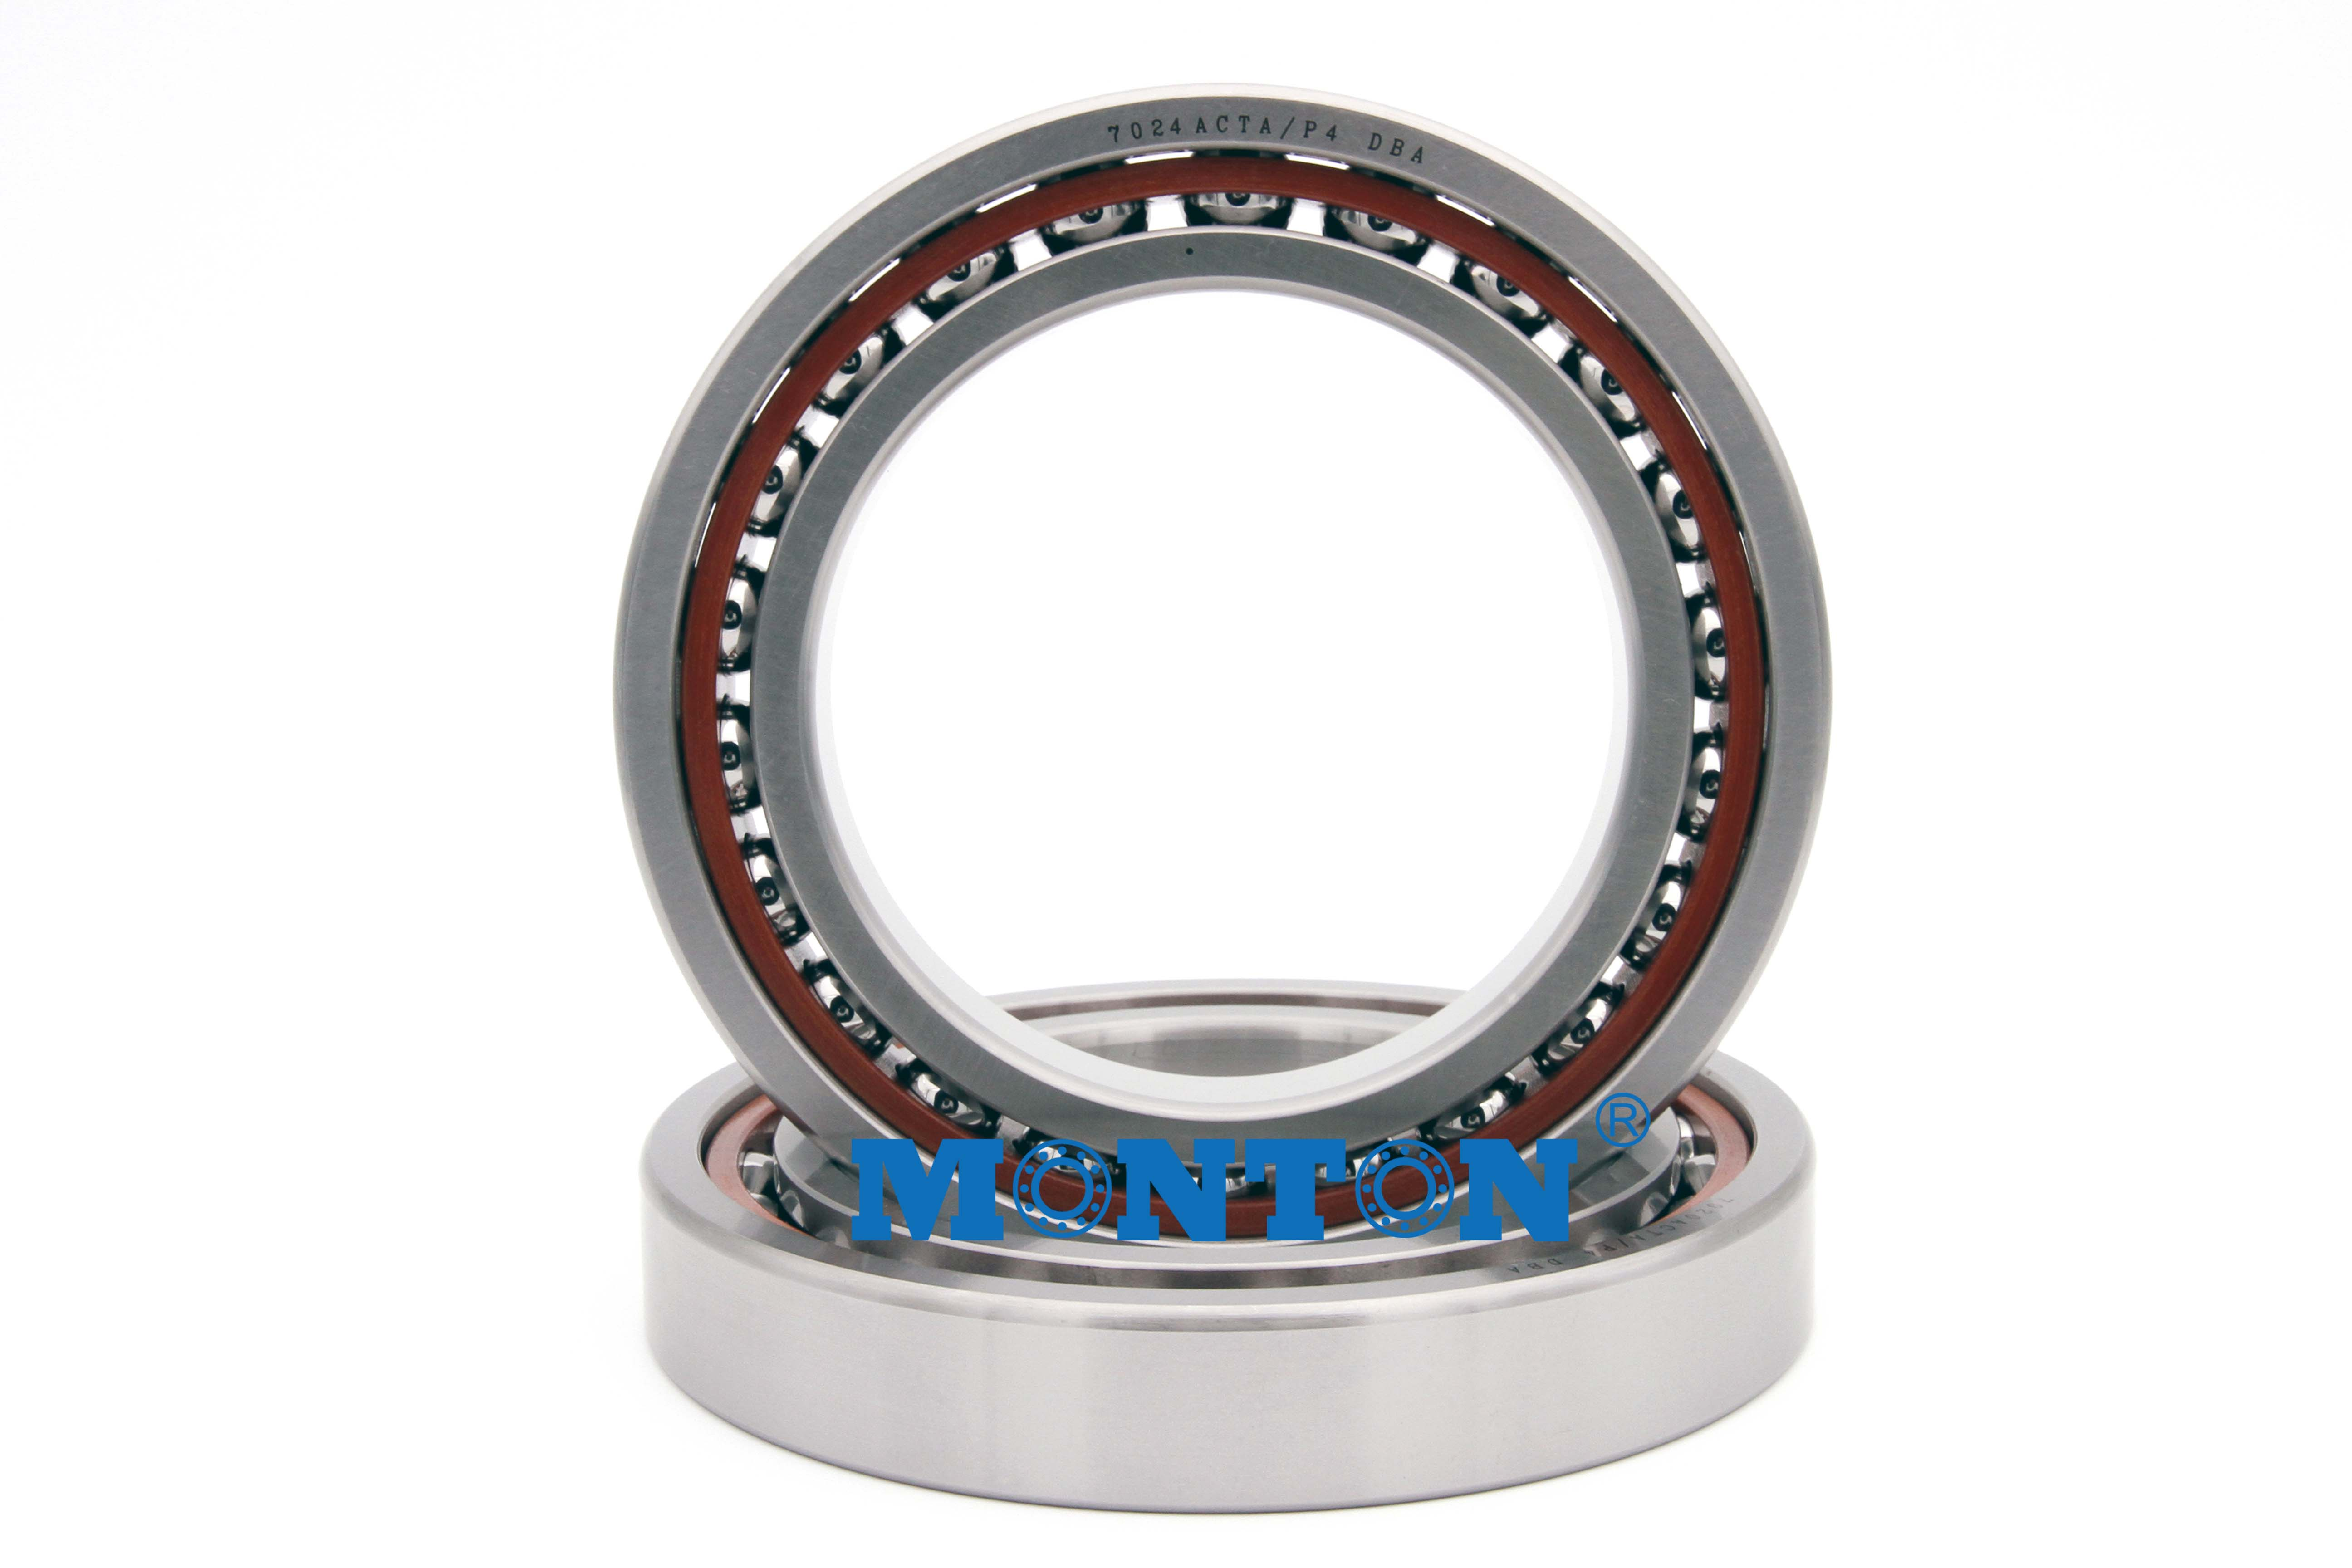 Matched Set of Two NSK 7011CTYNSULP4 Abec-7 Super Precision Spindle Bearings